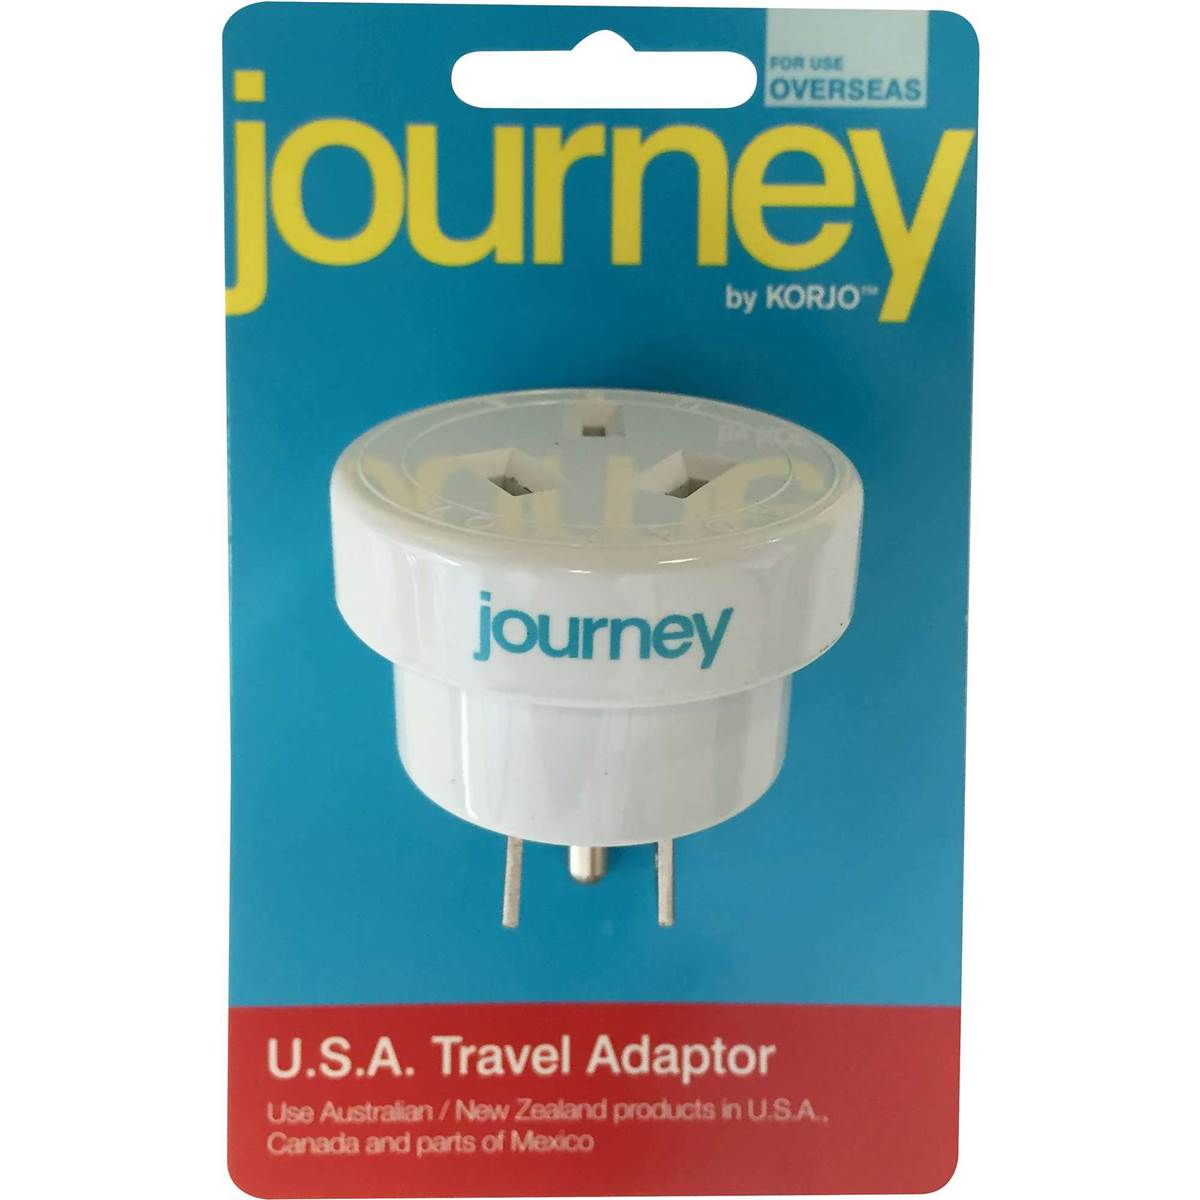 Coles Travel Adaptor Korjo Journey Usa Adaptor Each Woolworths